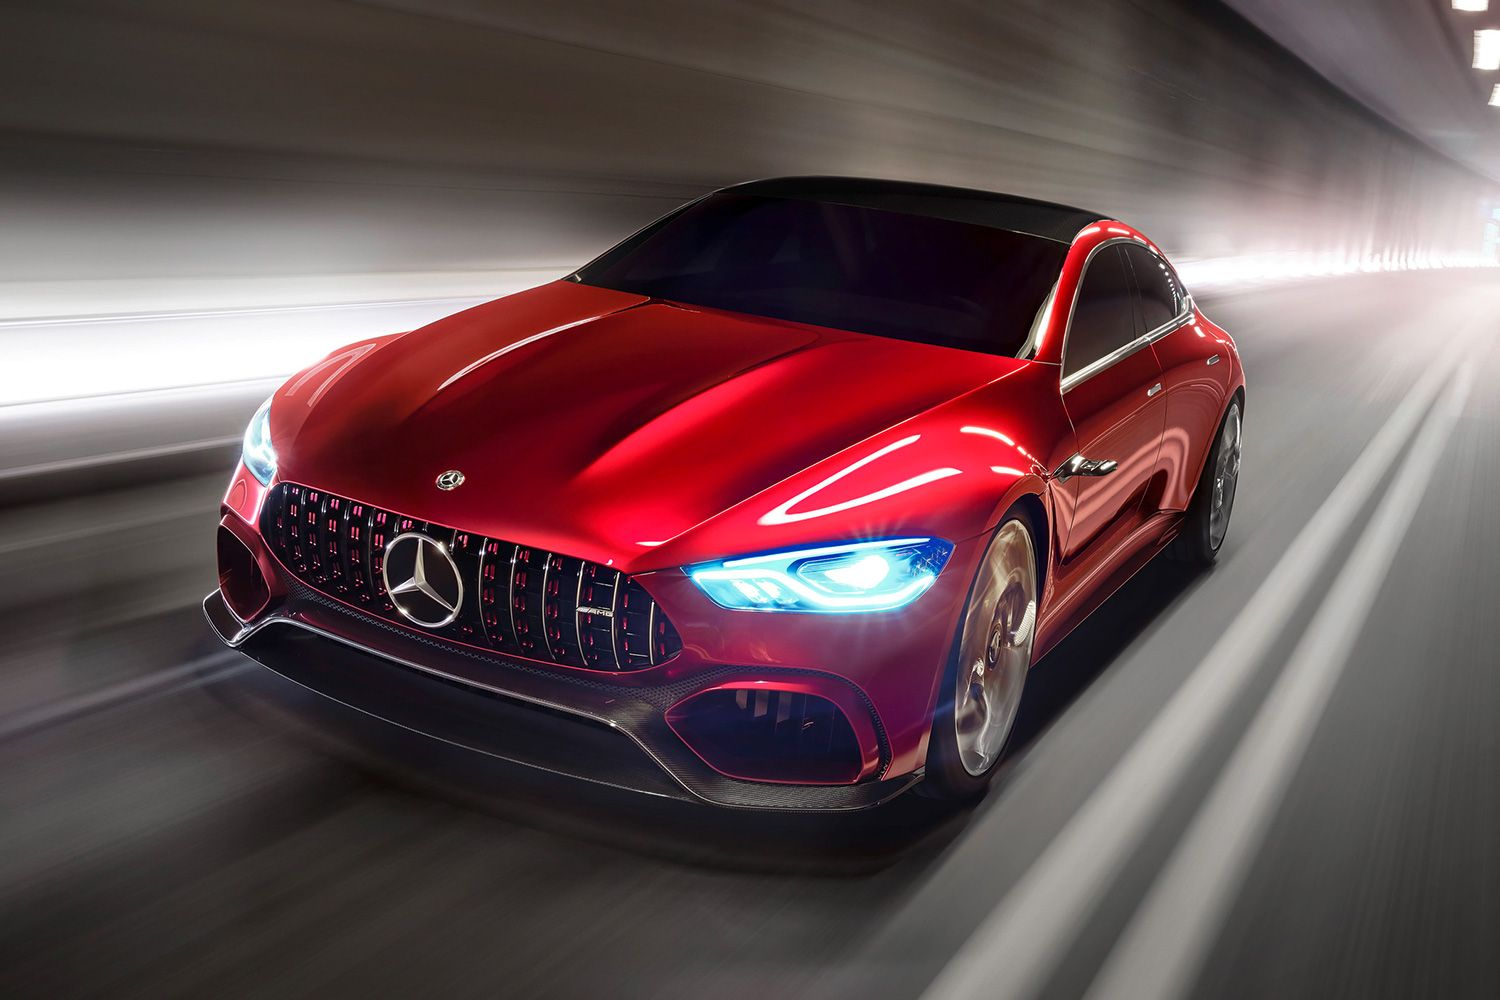 Mercedes Amg Introduces New 4 Door 805 Horsepower Gt Concept